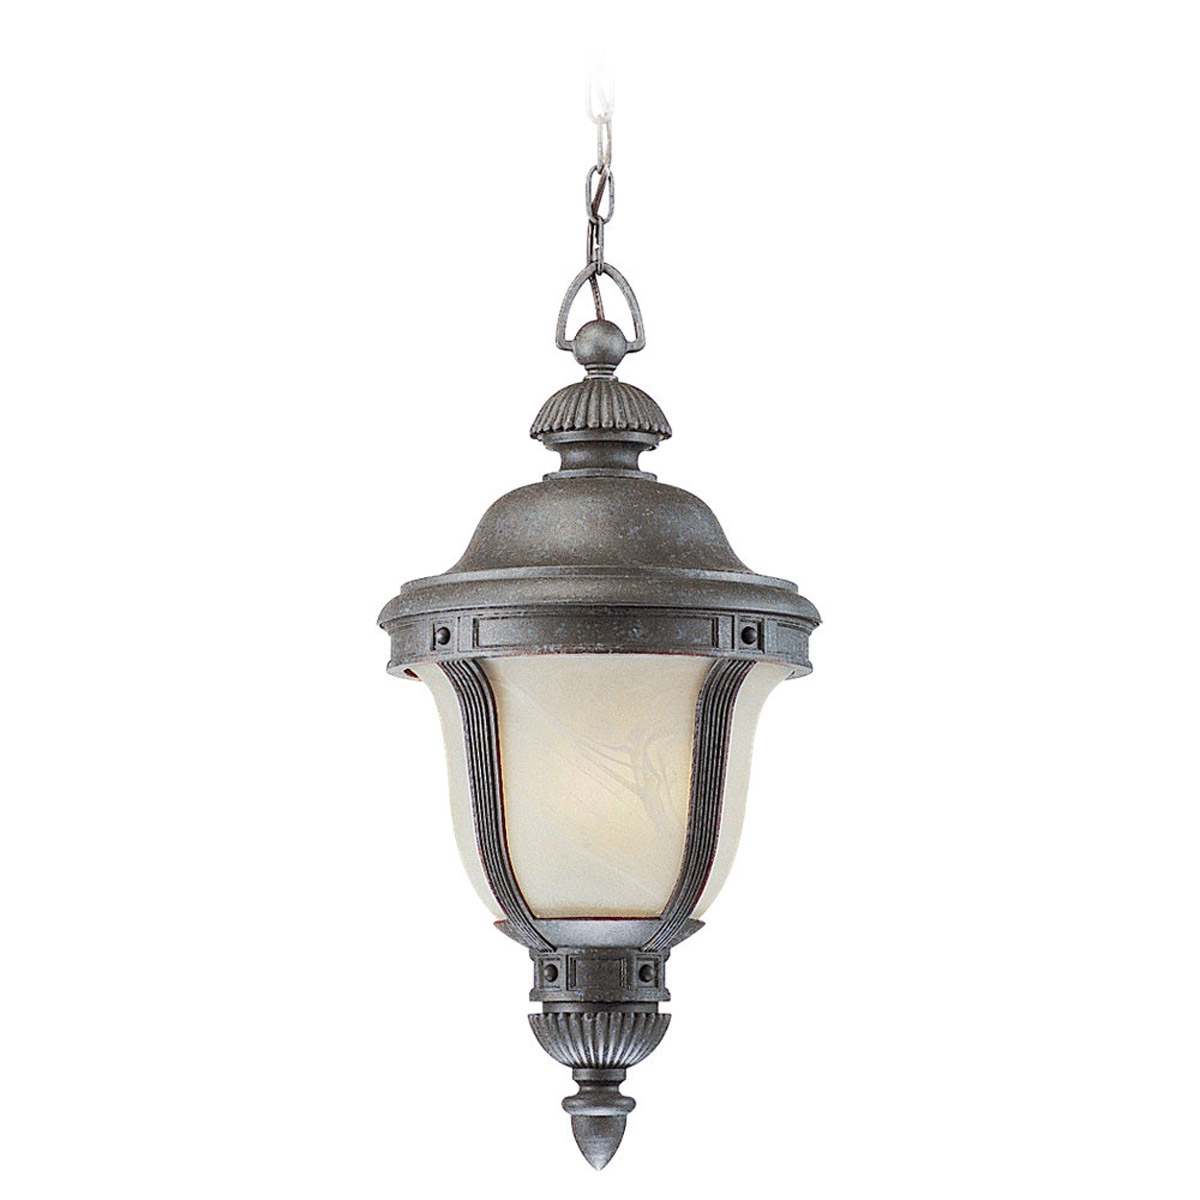 Sea Gull Lighting Winston Court 1 Light Outdoor Pendant in Oxford Bronze 69485PBLE-746 photo